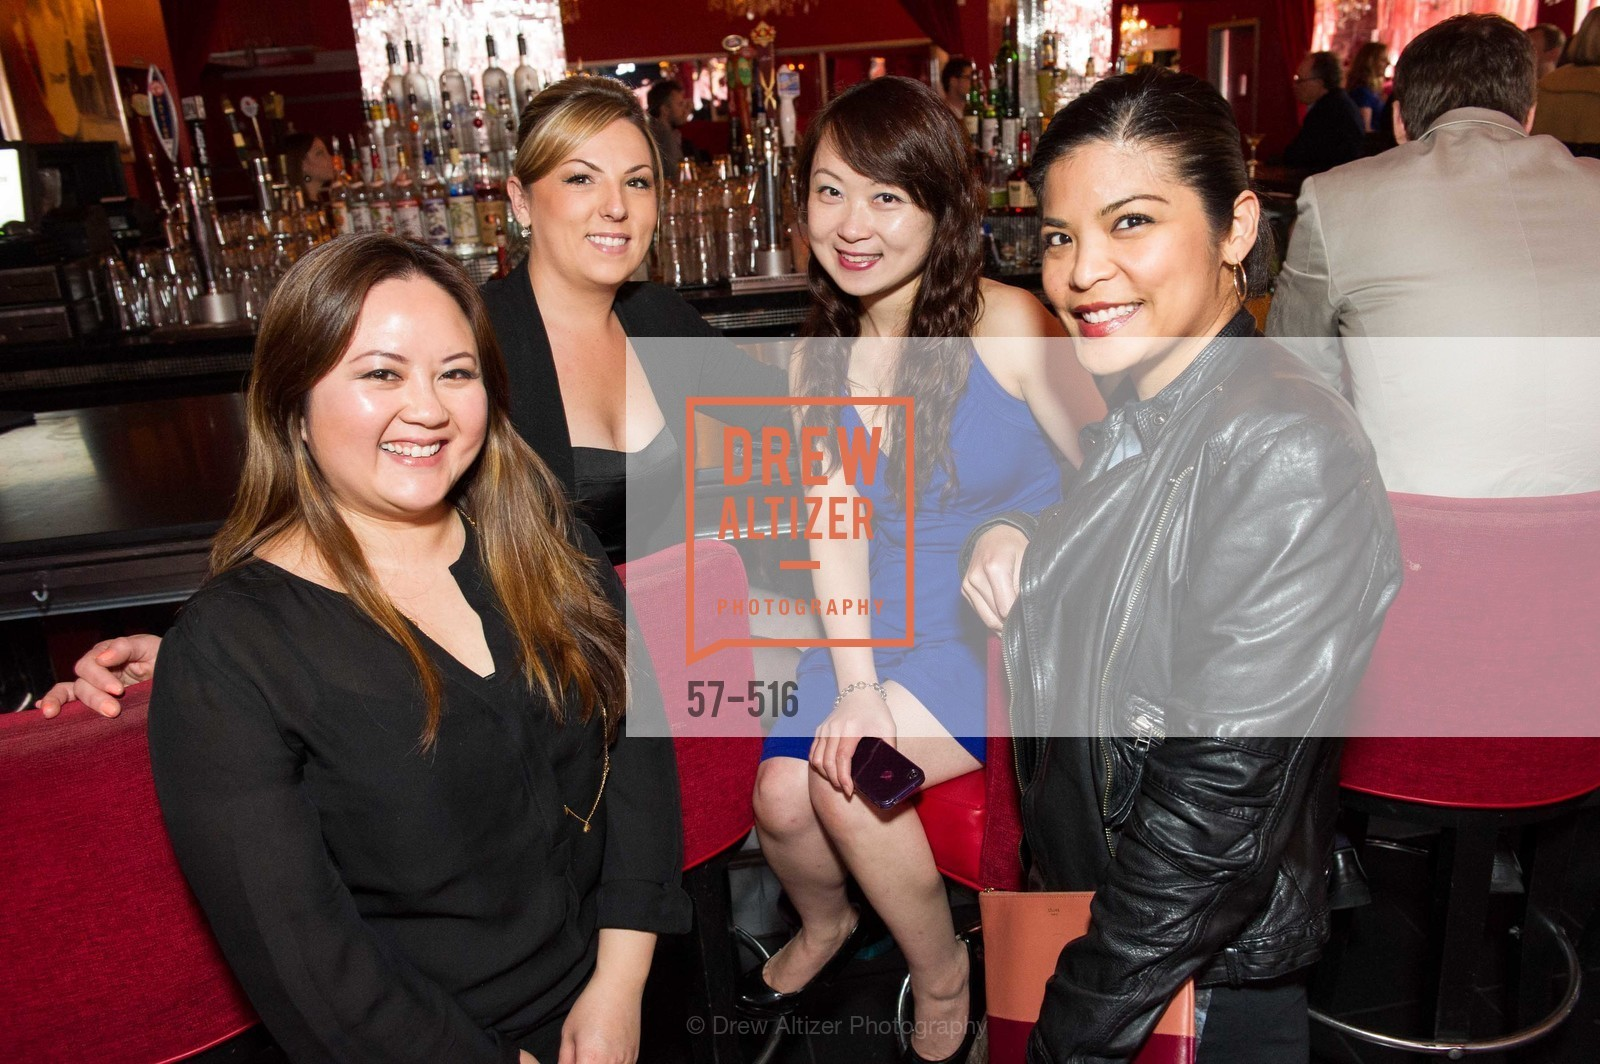 Cindy Hoang, Rene Peirano, Cintia Sitou, Mika Ruiz, HOLY FAMILY DAY HOME Coming Home Gala Launch Party, US. US, April 10th, 2014,Drew Altizer, Drew Altizer Photography, full-service agency, private events, San Francisco photographer, photographer california